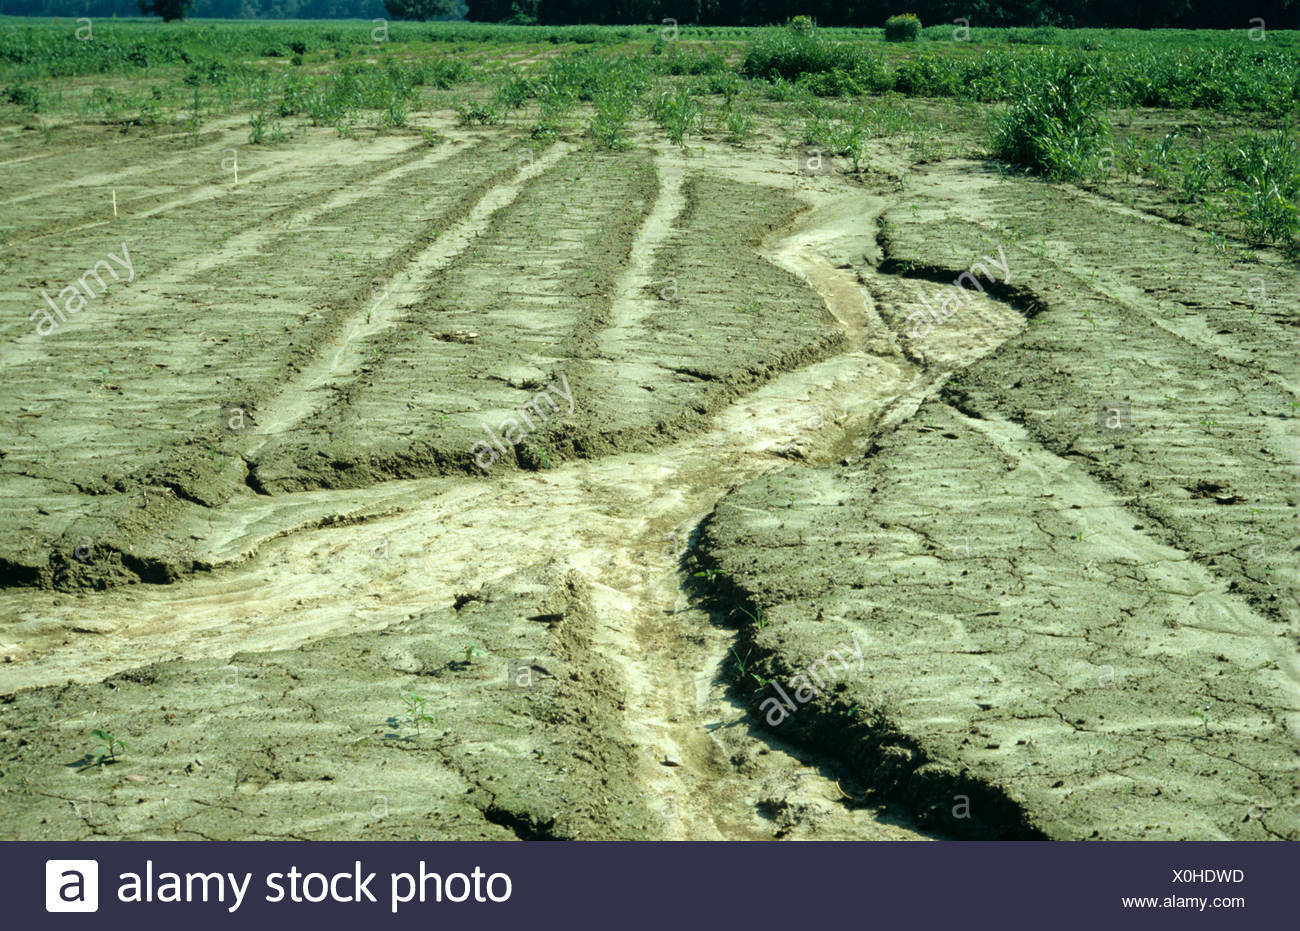 Erosion gully or rill cut in field soil after heavy rains - Stock Image